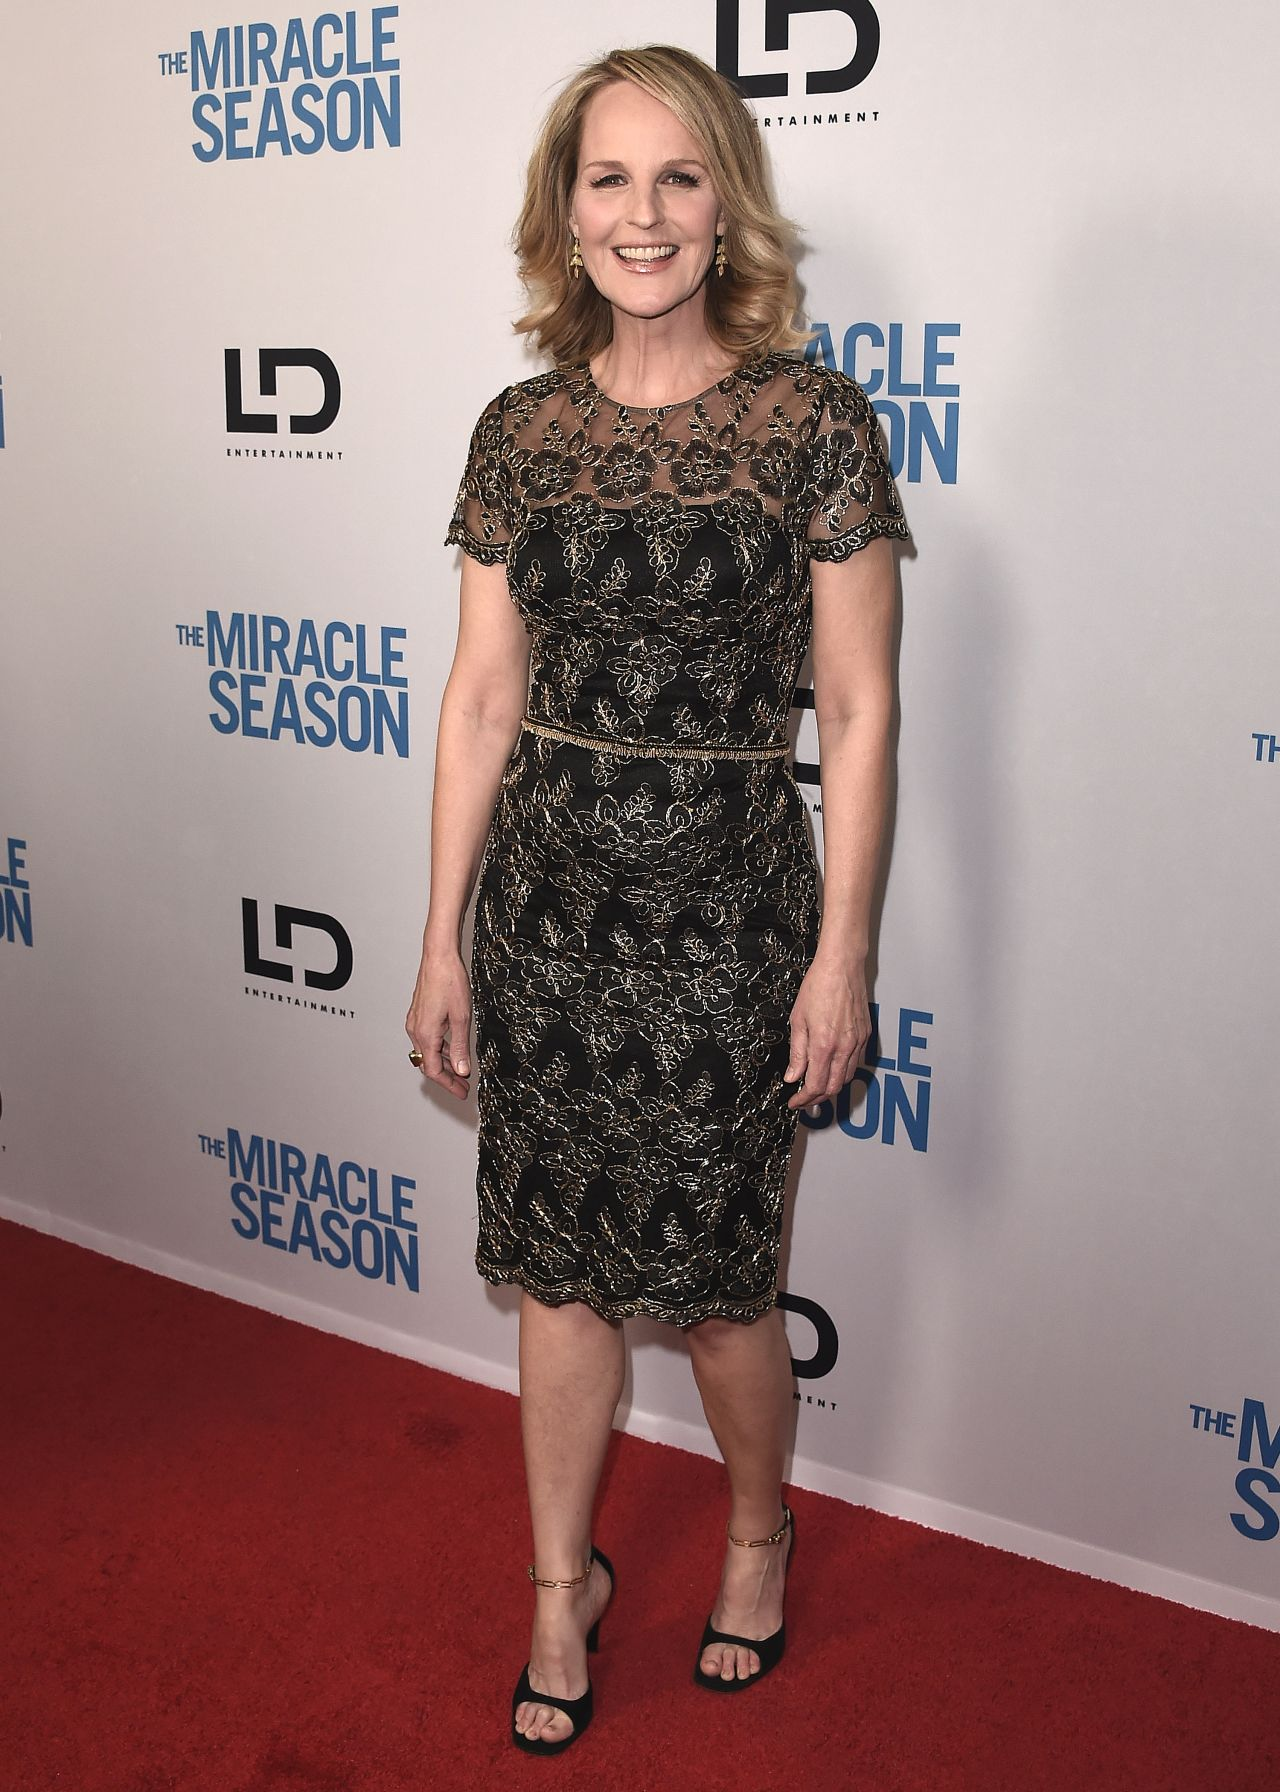 Helen Hunt The Miracle Season Special Screening In